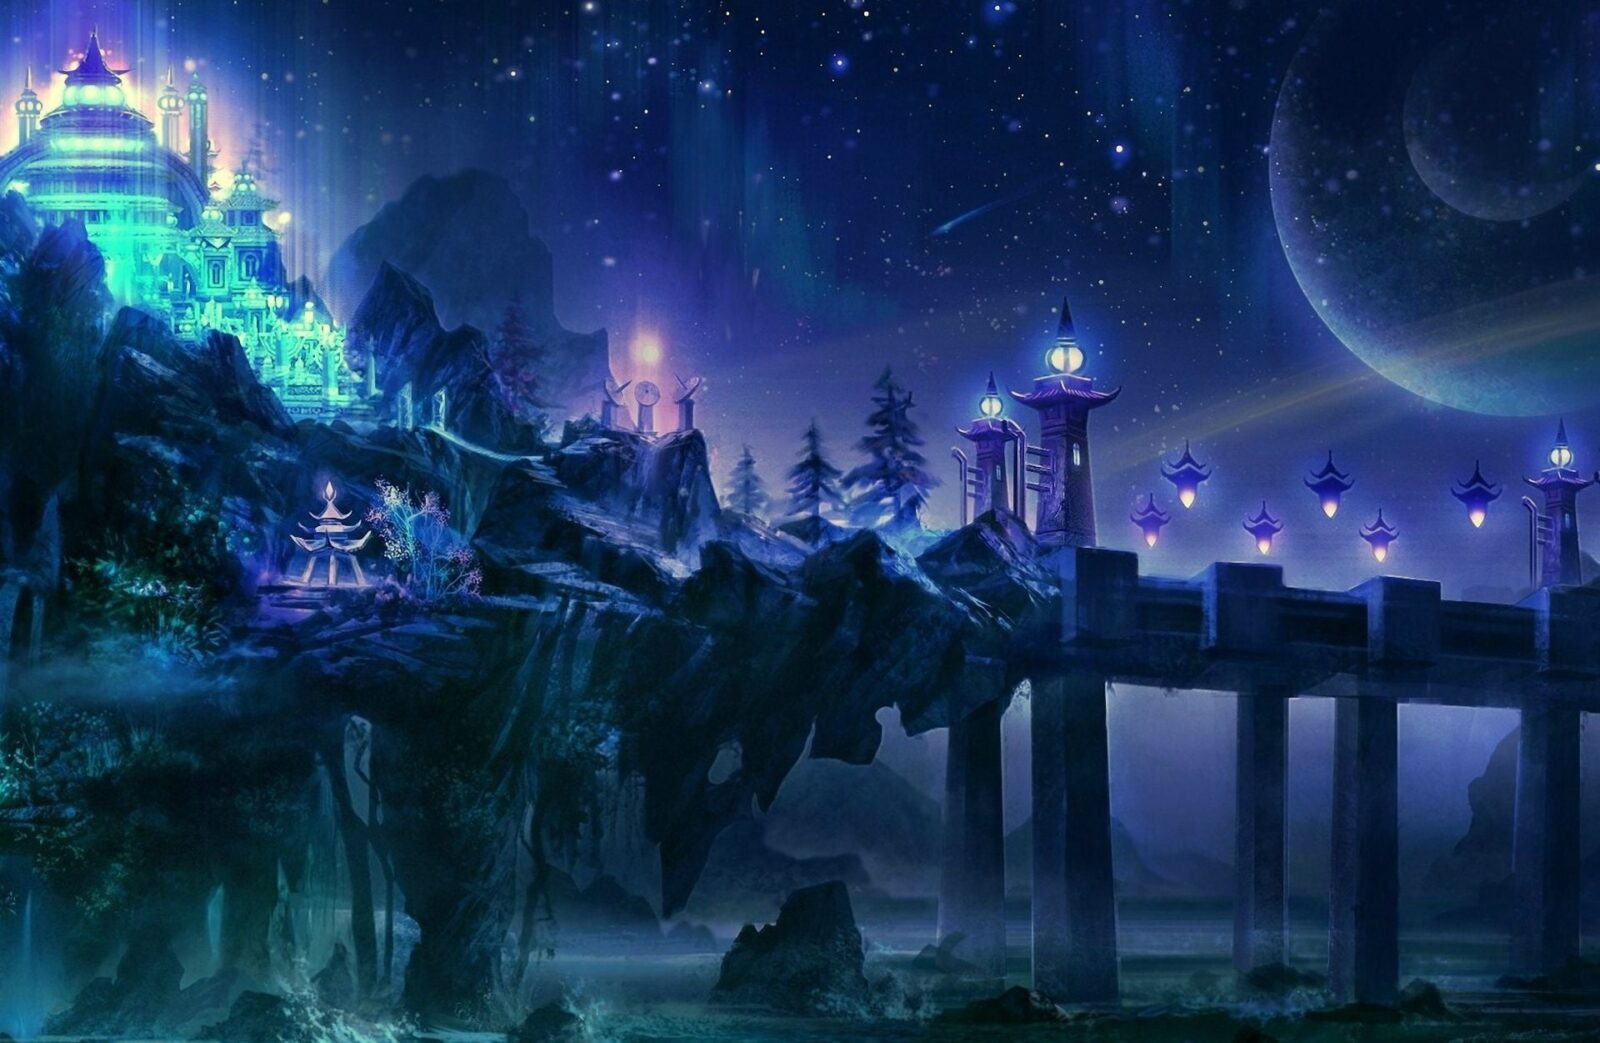 Hd >> 21+ Fairy Tales Castles HD wallpapers High Quality Download